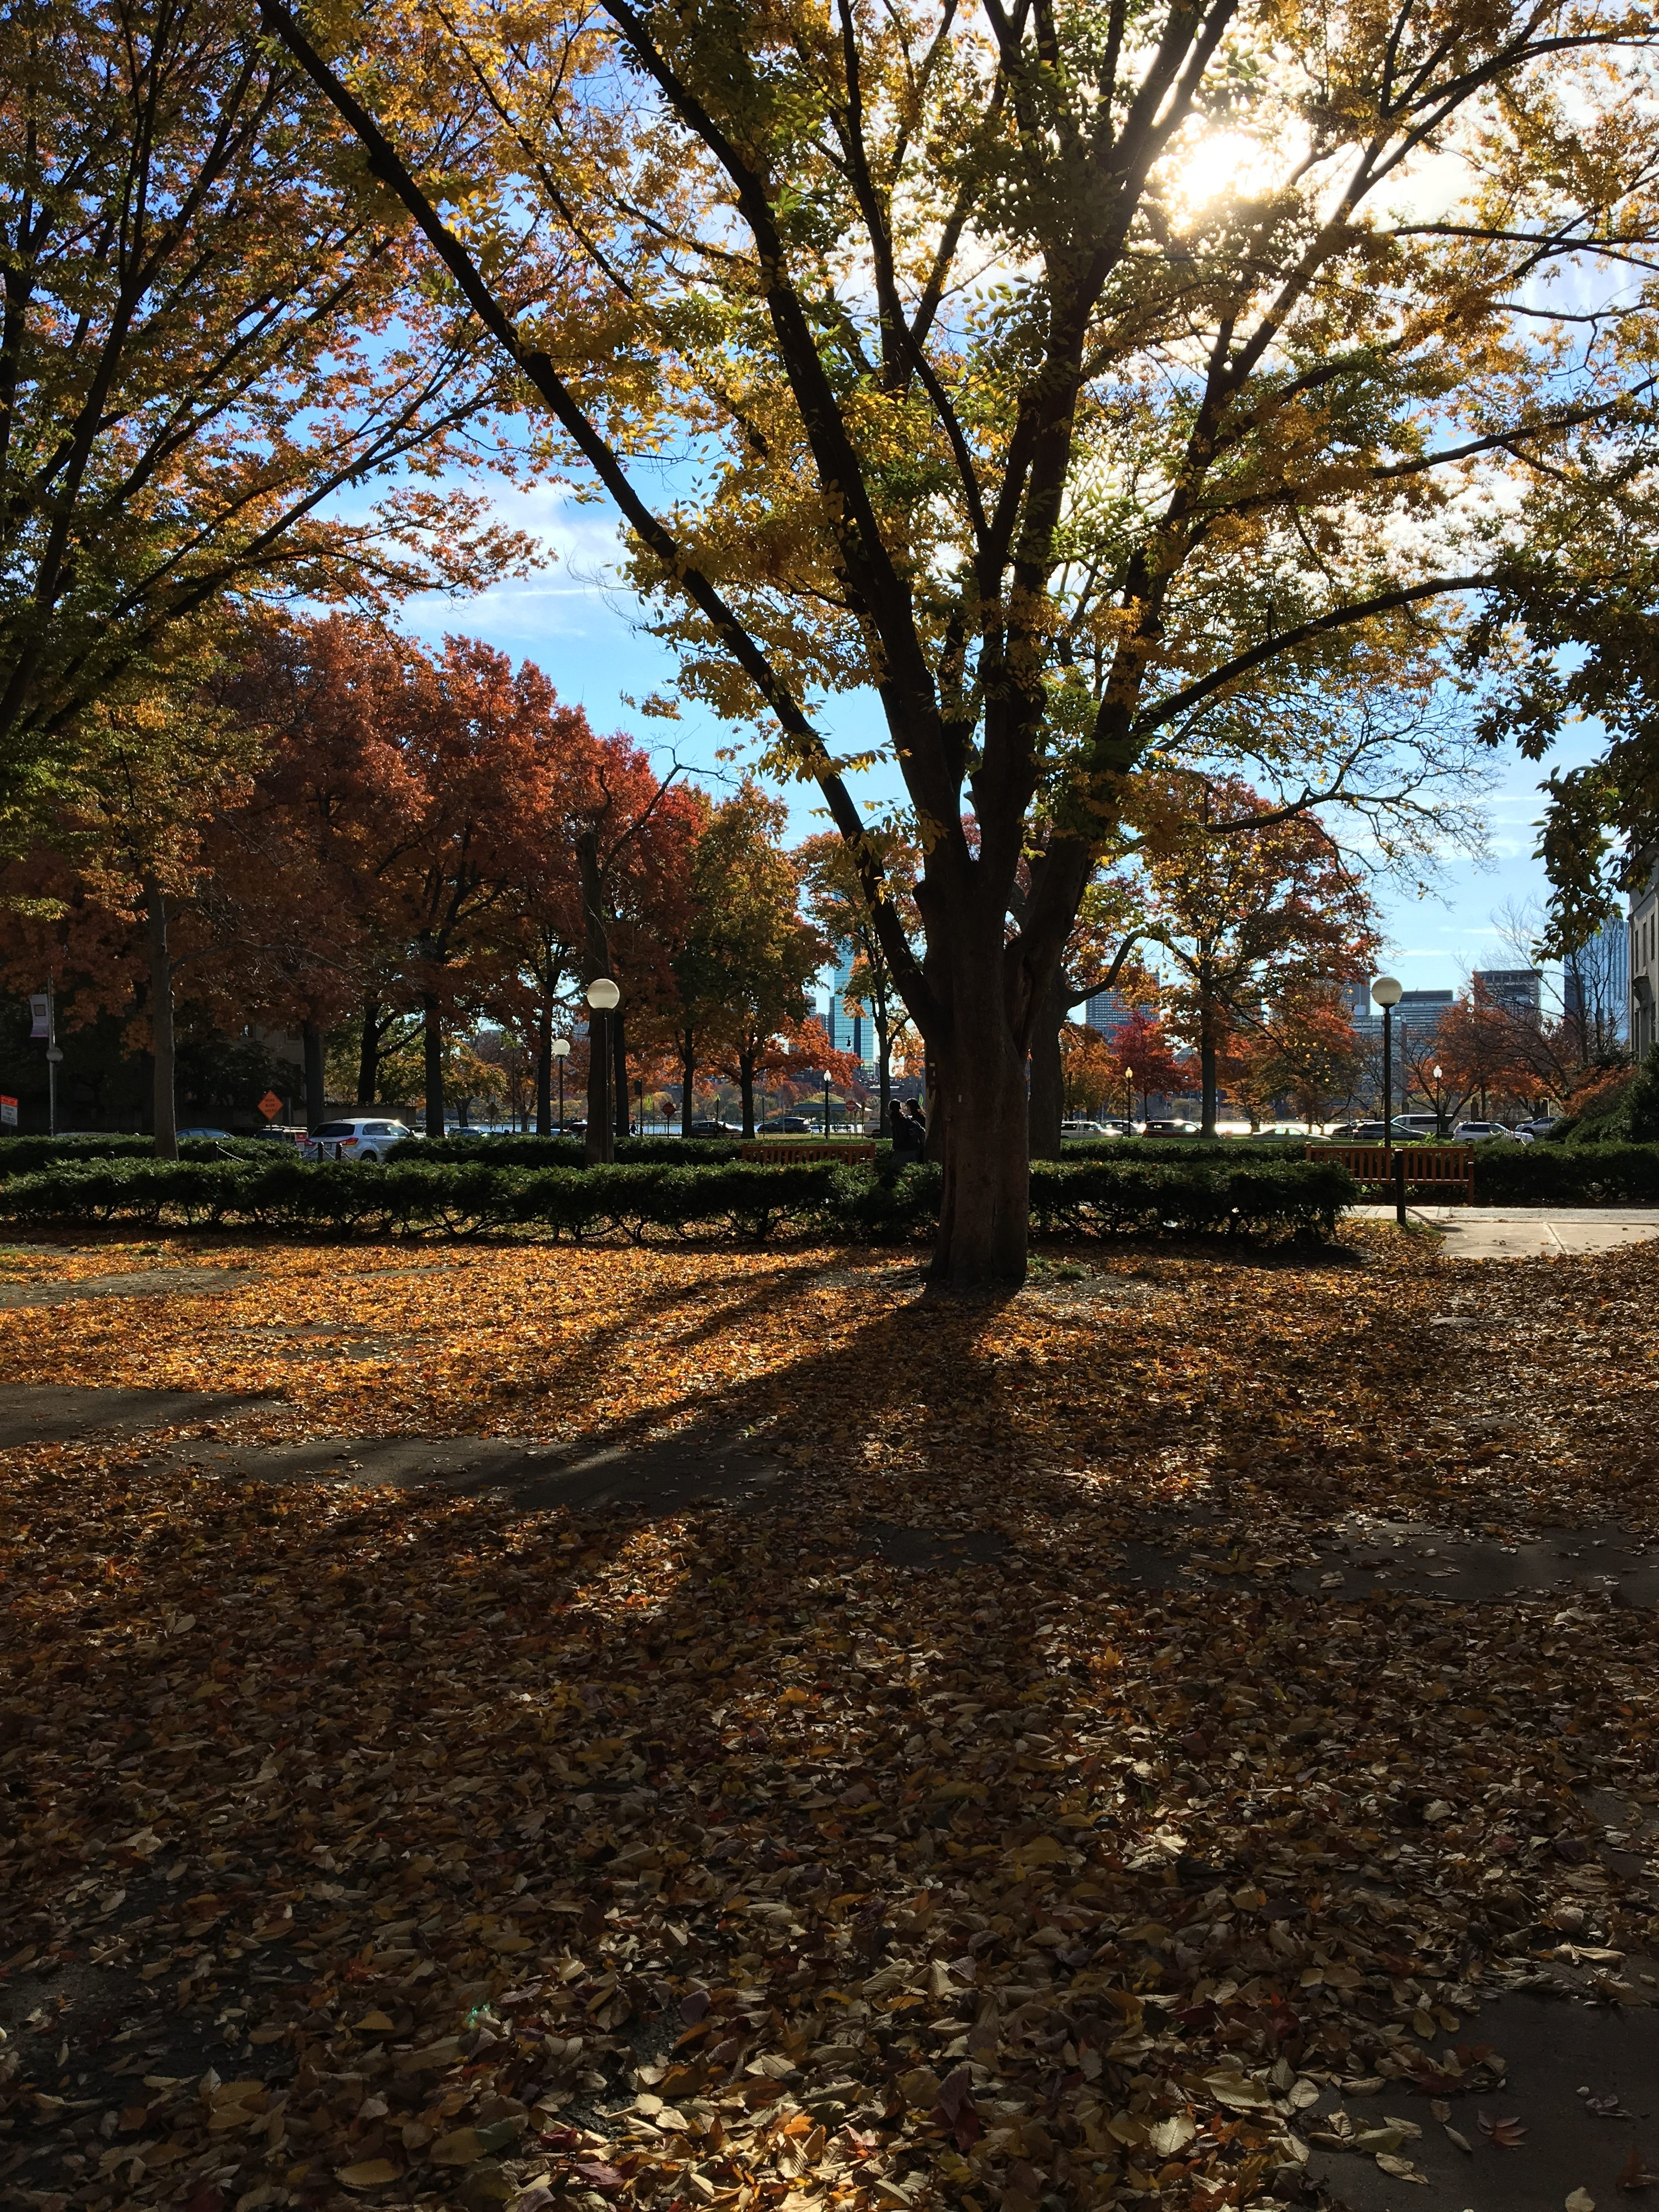 The edge of East Campus courtyard. The foreground is covered entirely in orange leaves, with yellow and orange trees behind.